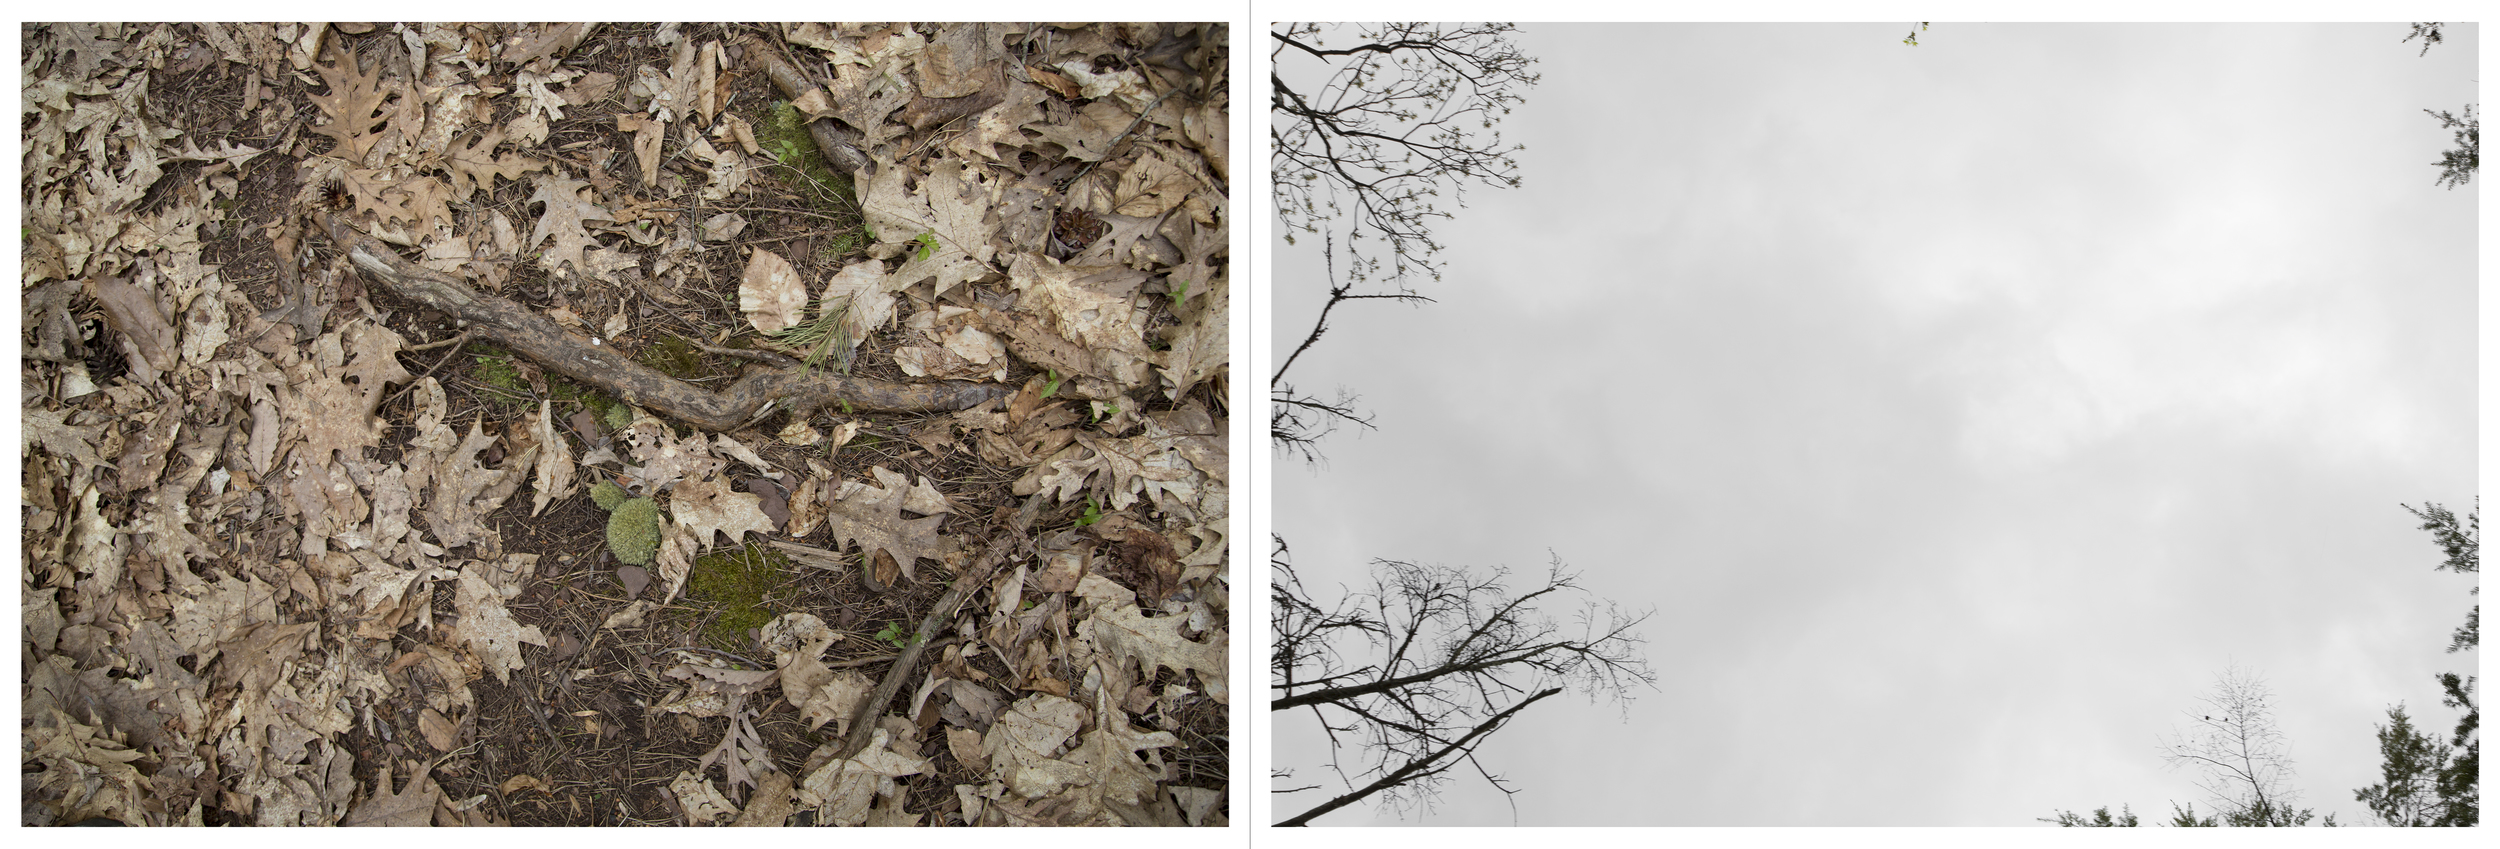 """And so on and so forth in much the same vein: Mayapples, Inkjet Photograph, 24"""" X 72,"""" 2015."""